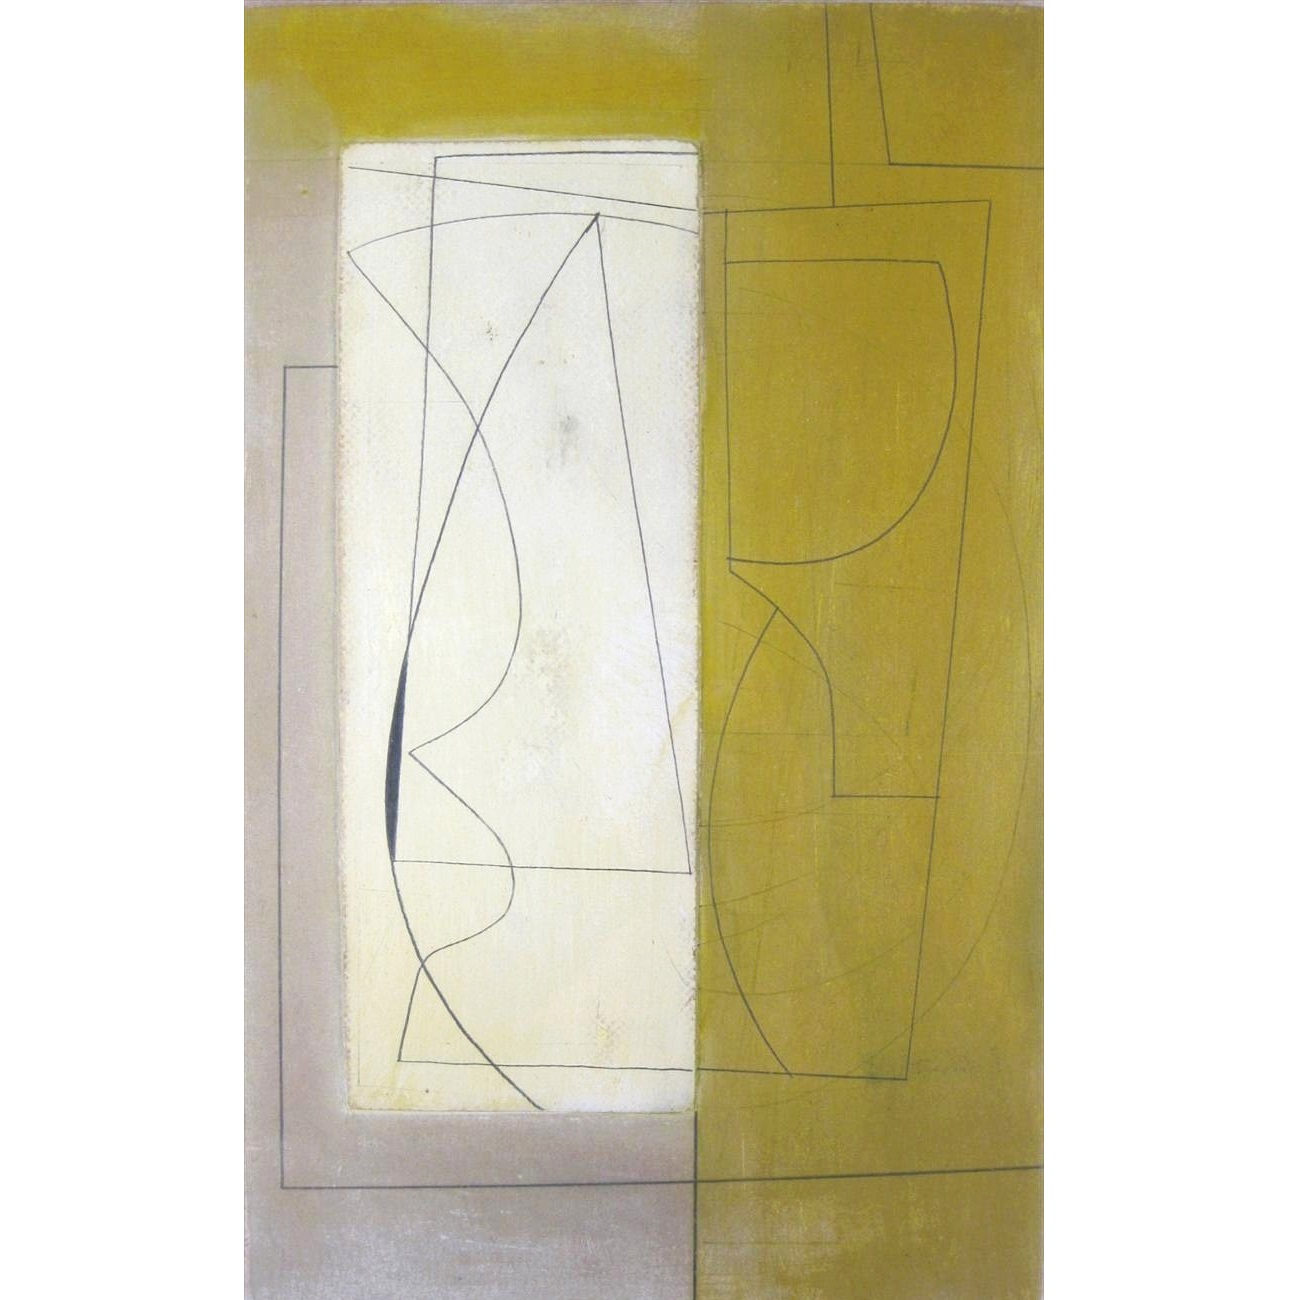 Ben Nicholson, British, 1894-1982, 'Birdwing', April 15, 1953, Mixed Media. Sold For $81,600.